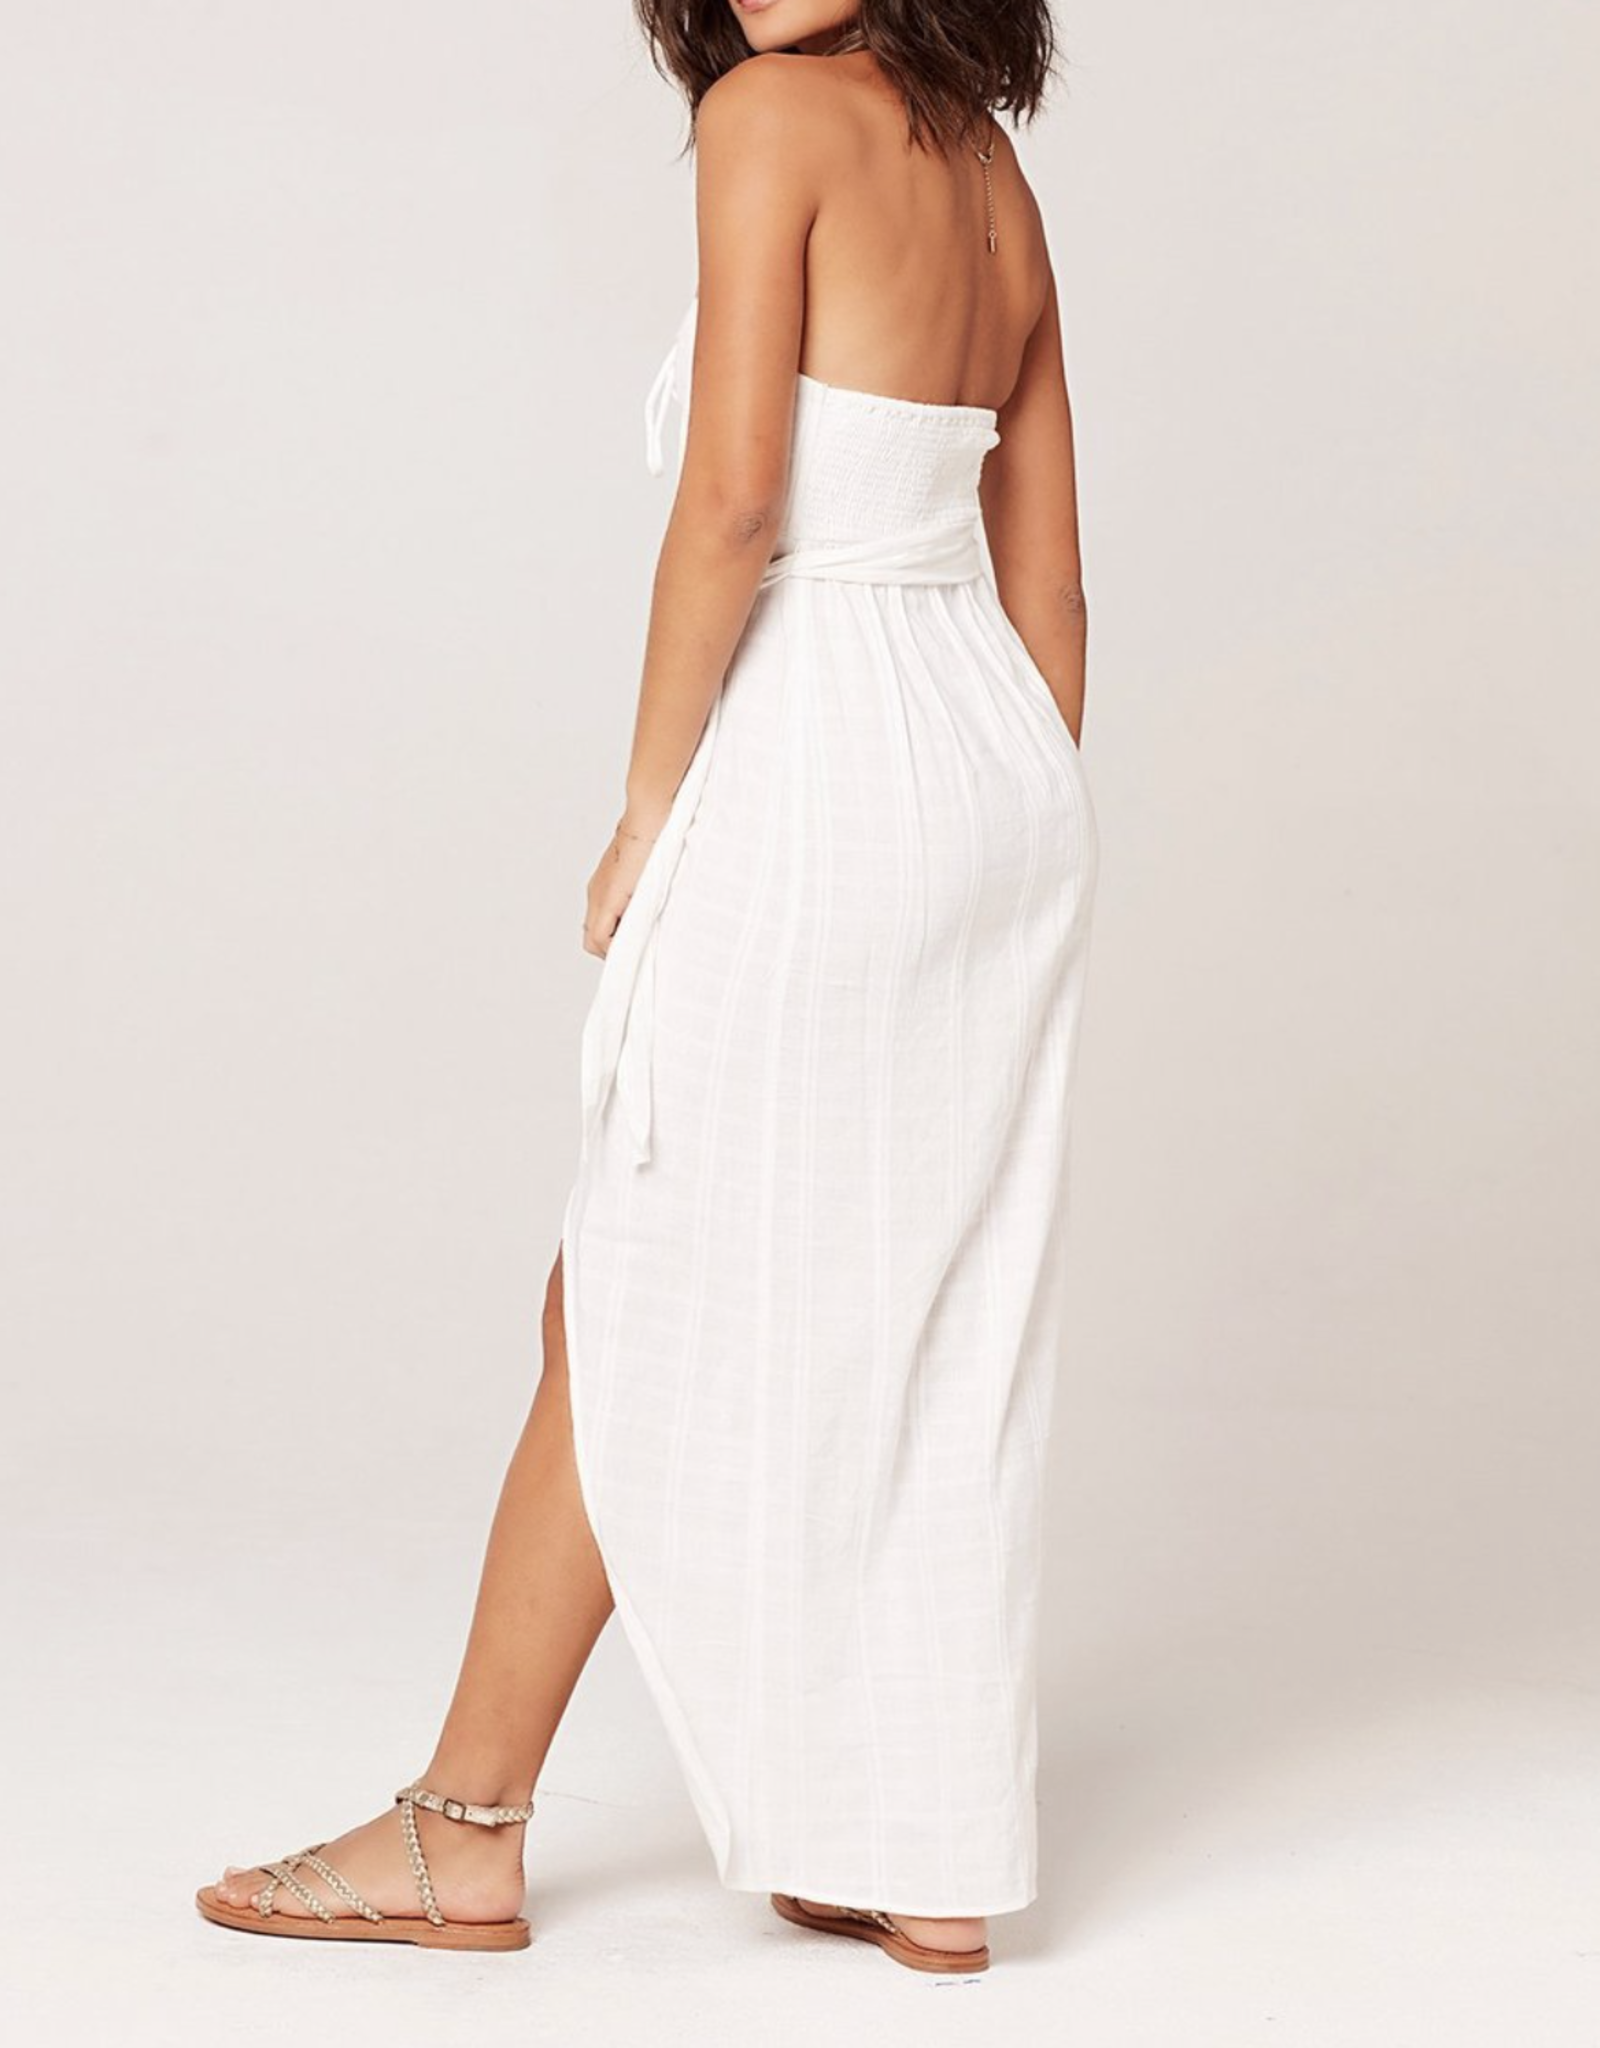 LSpace White Solana Cover-Up